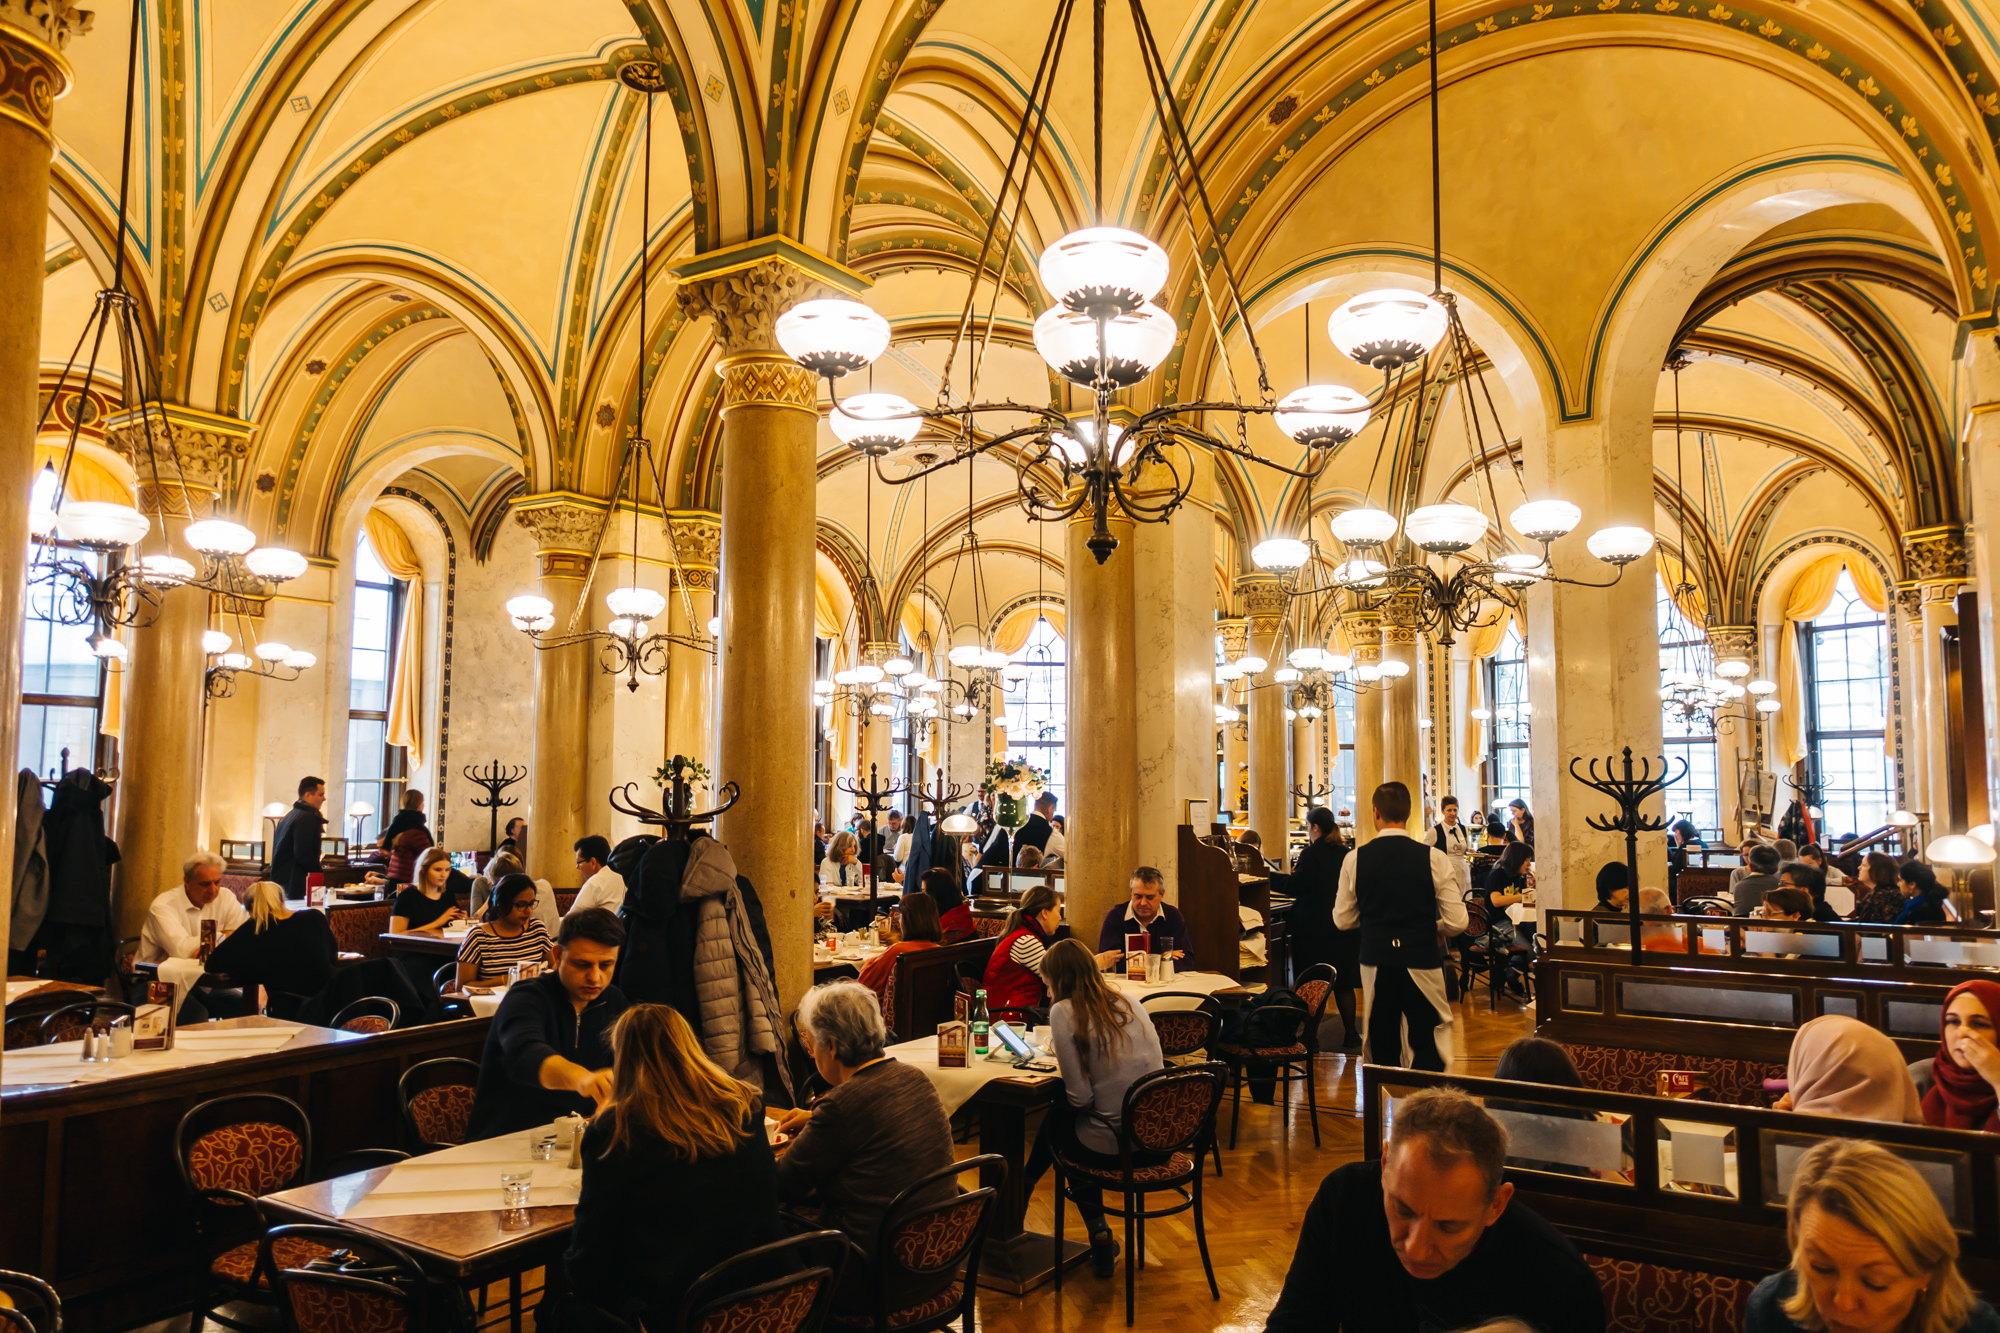 Inside the famous Cafe Central